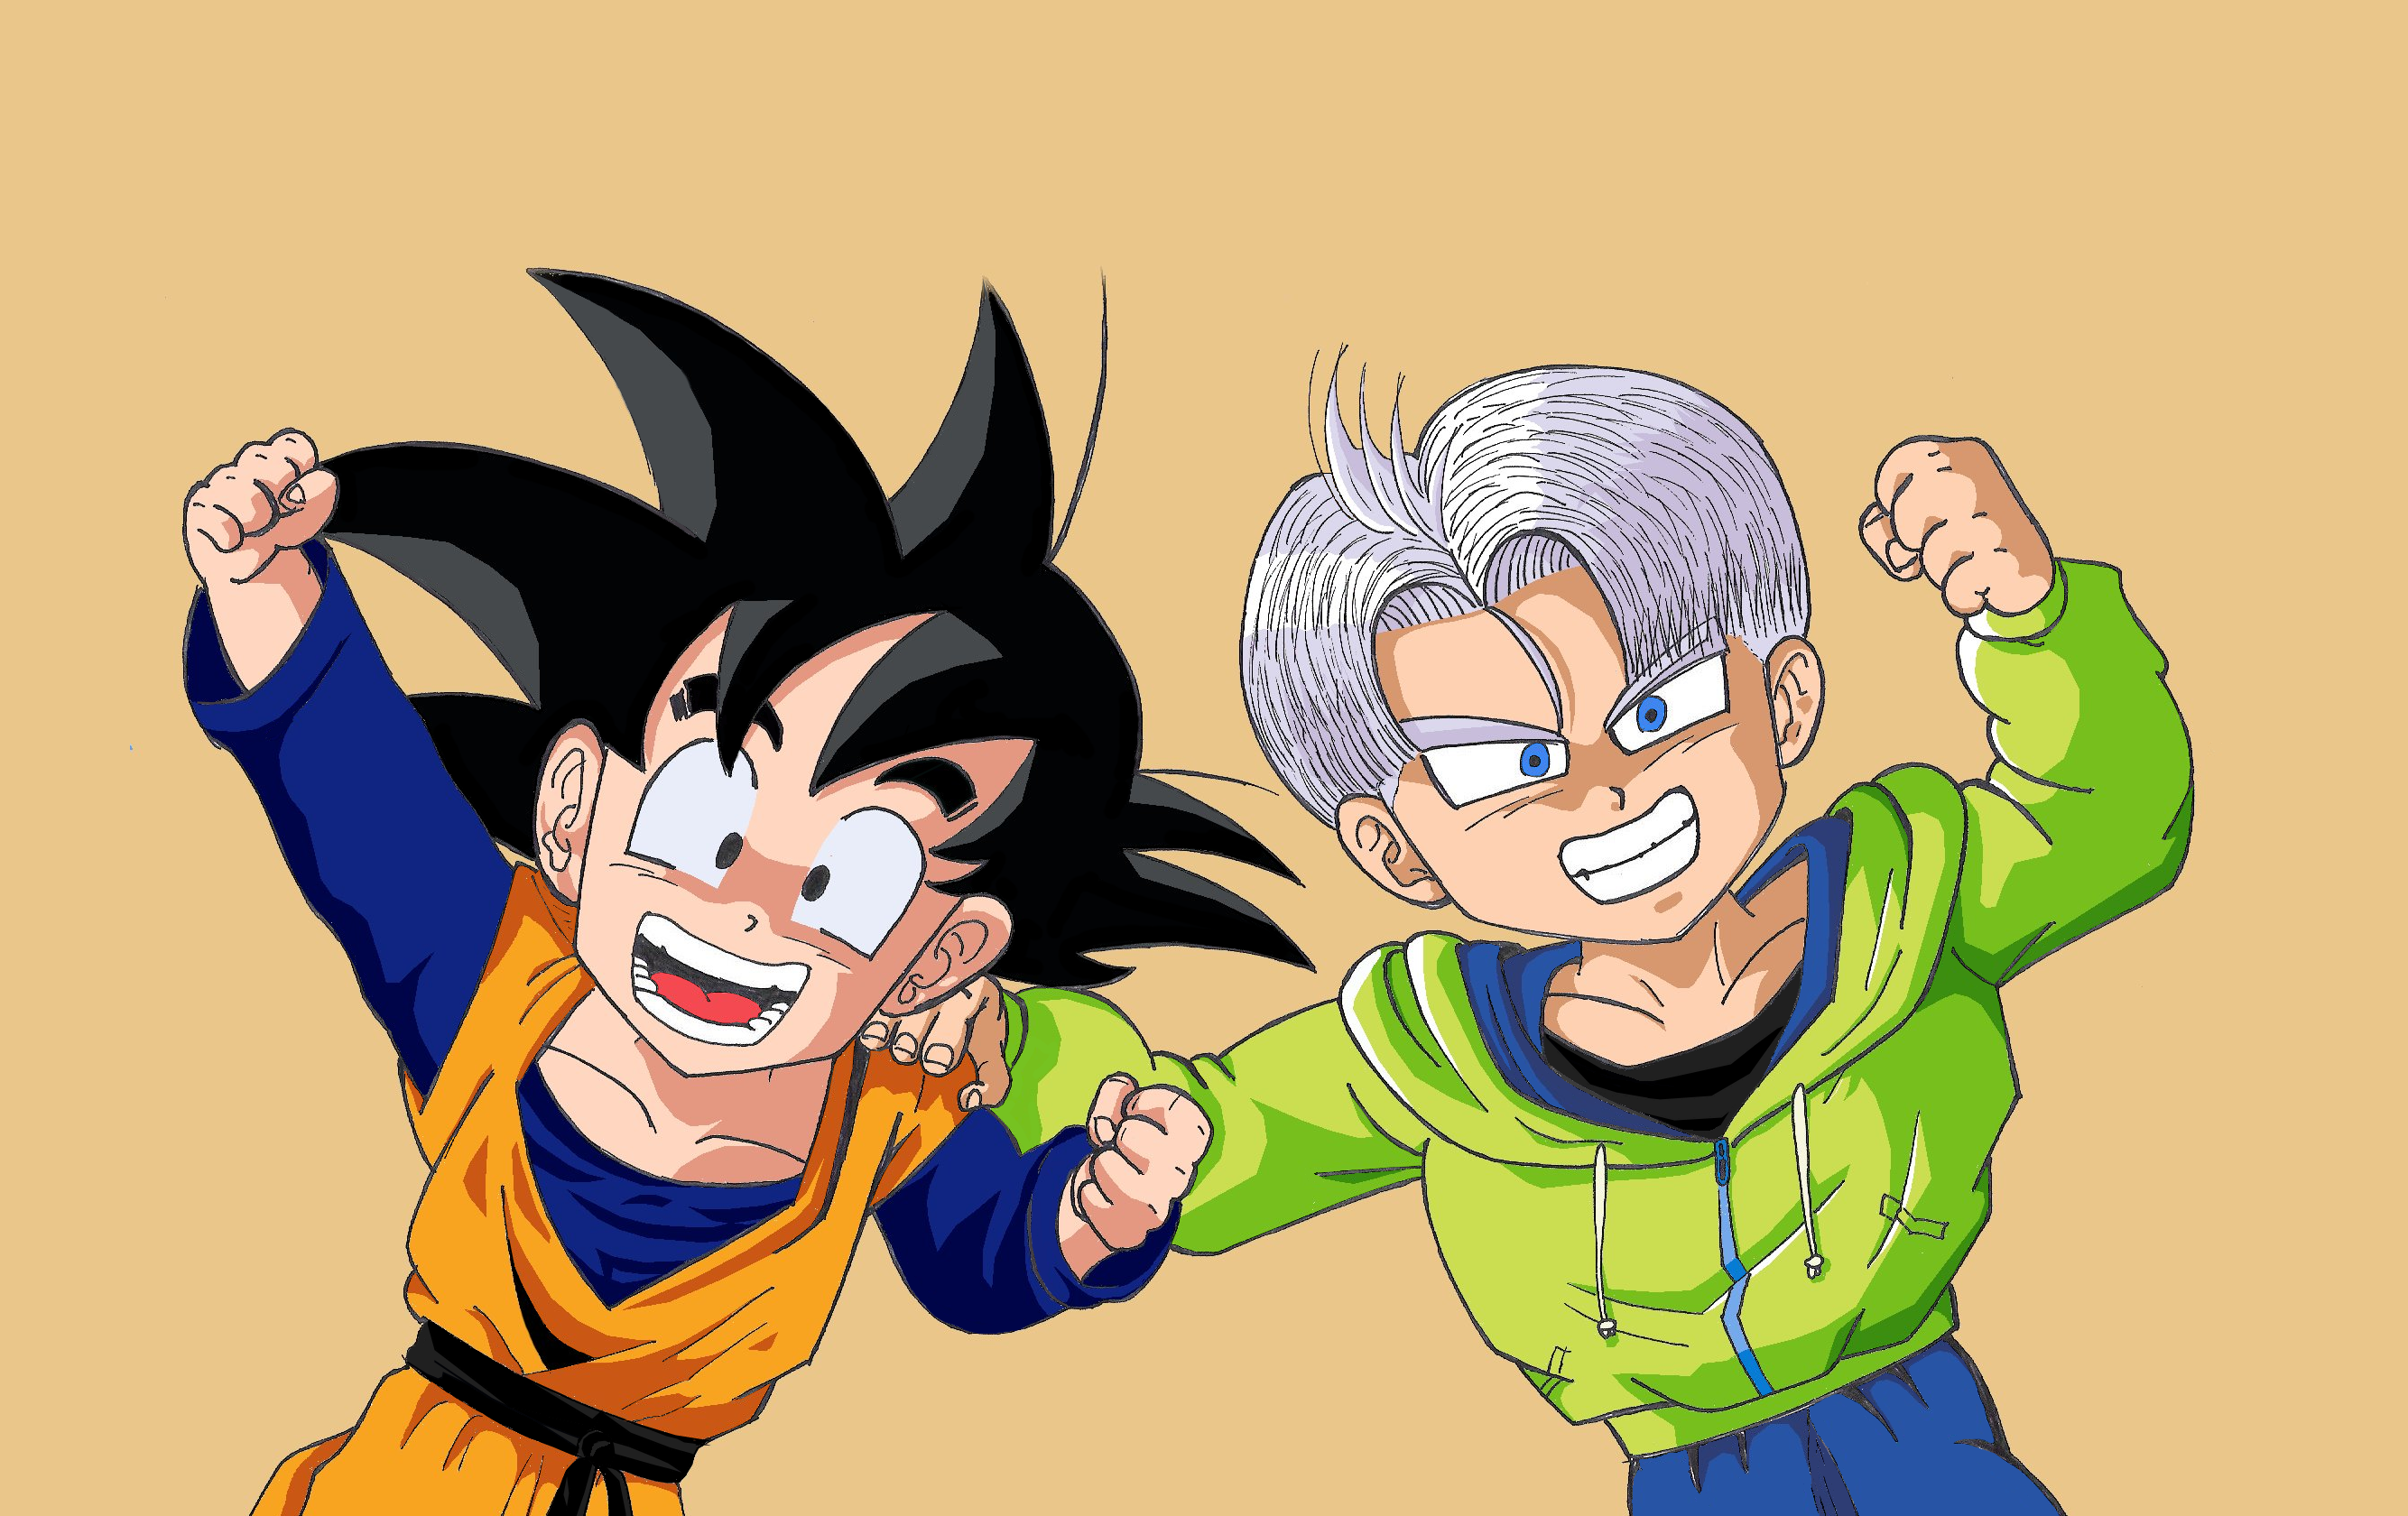 Son Goten And Trunks Color Version By Przemekw On Deviantart